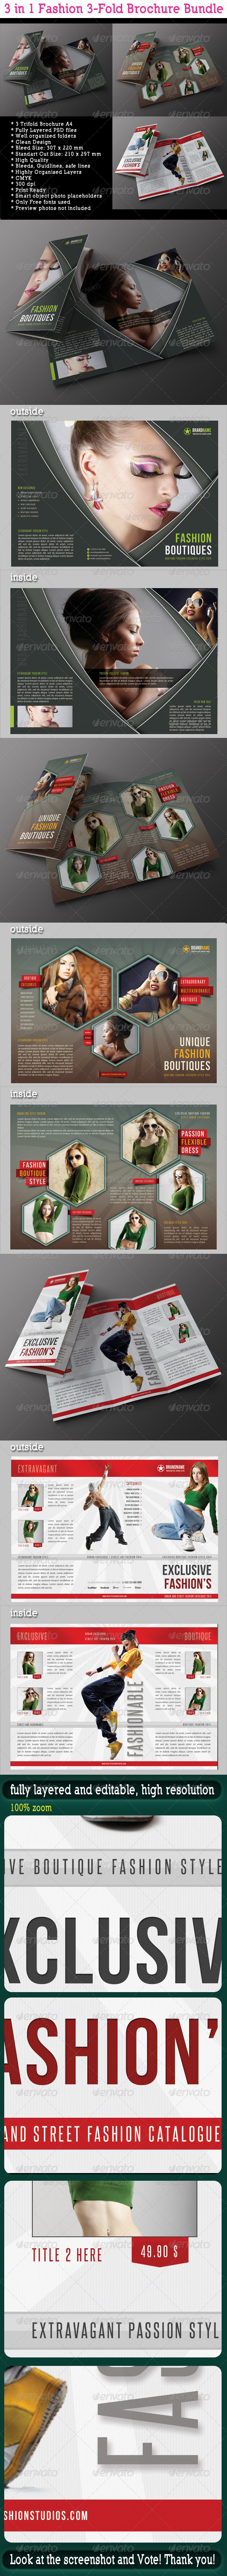 GraphicRiver 3 in 1 Fashion 3-Fold Brochure Bundle 05 6987700